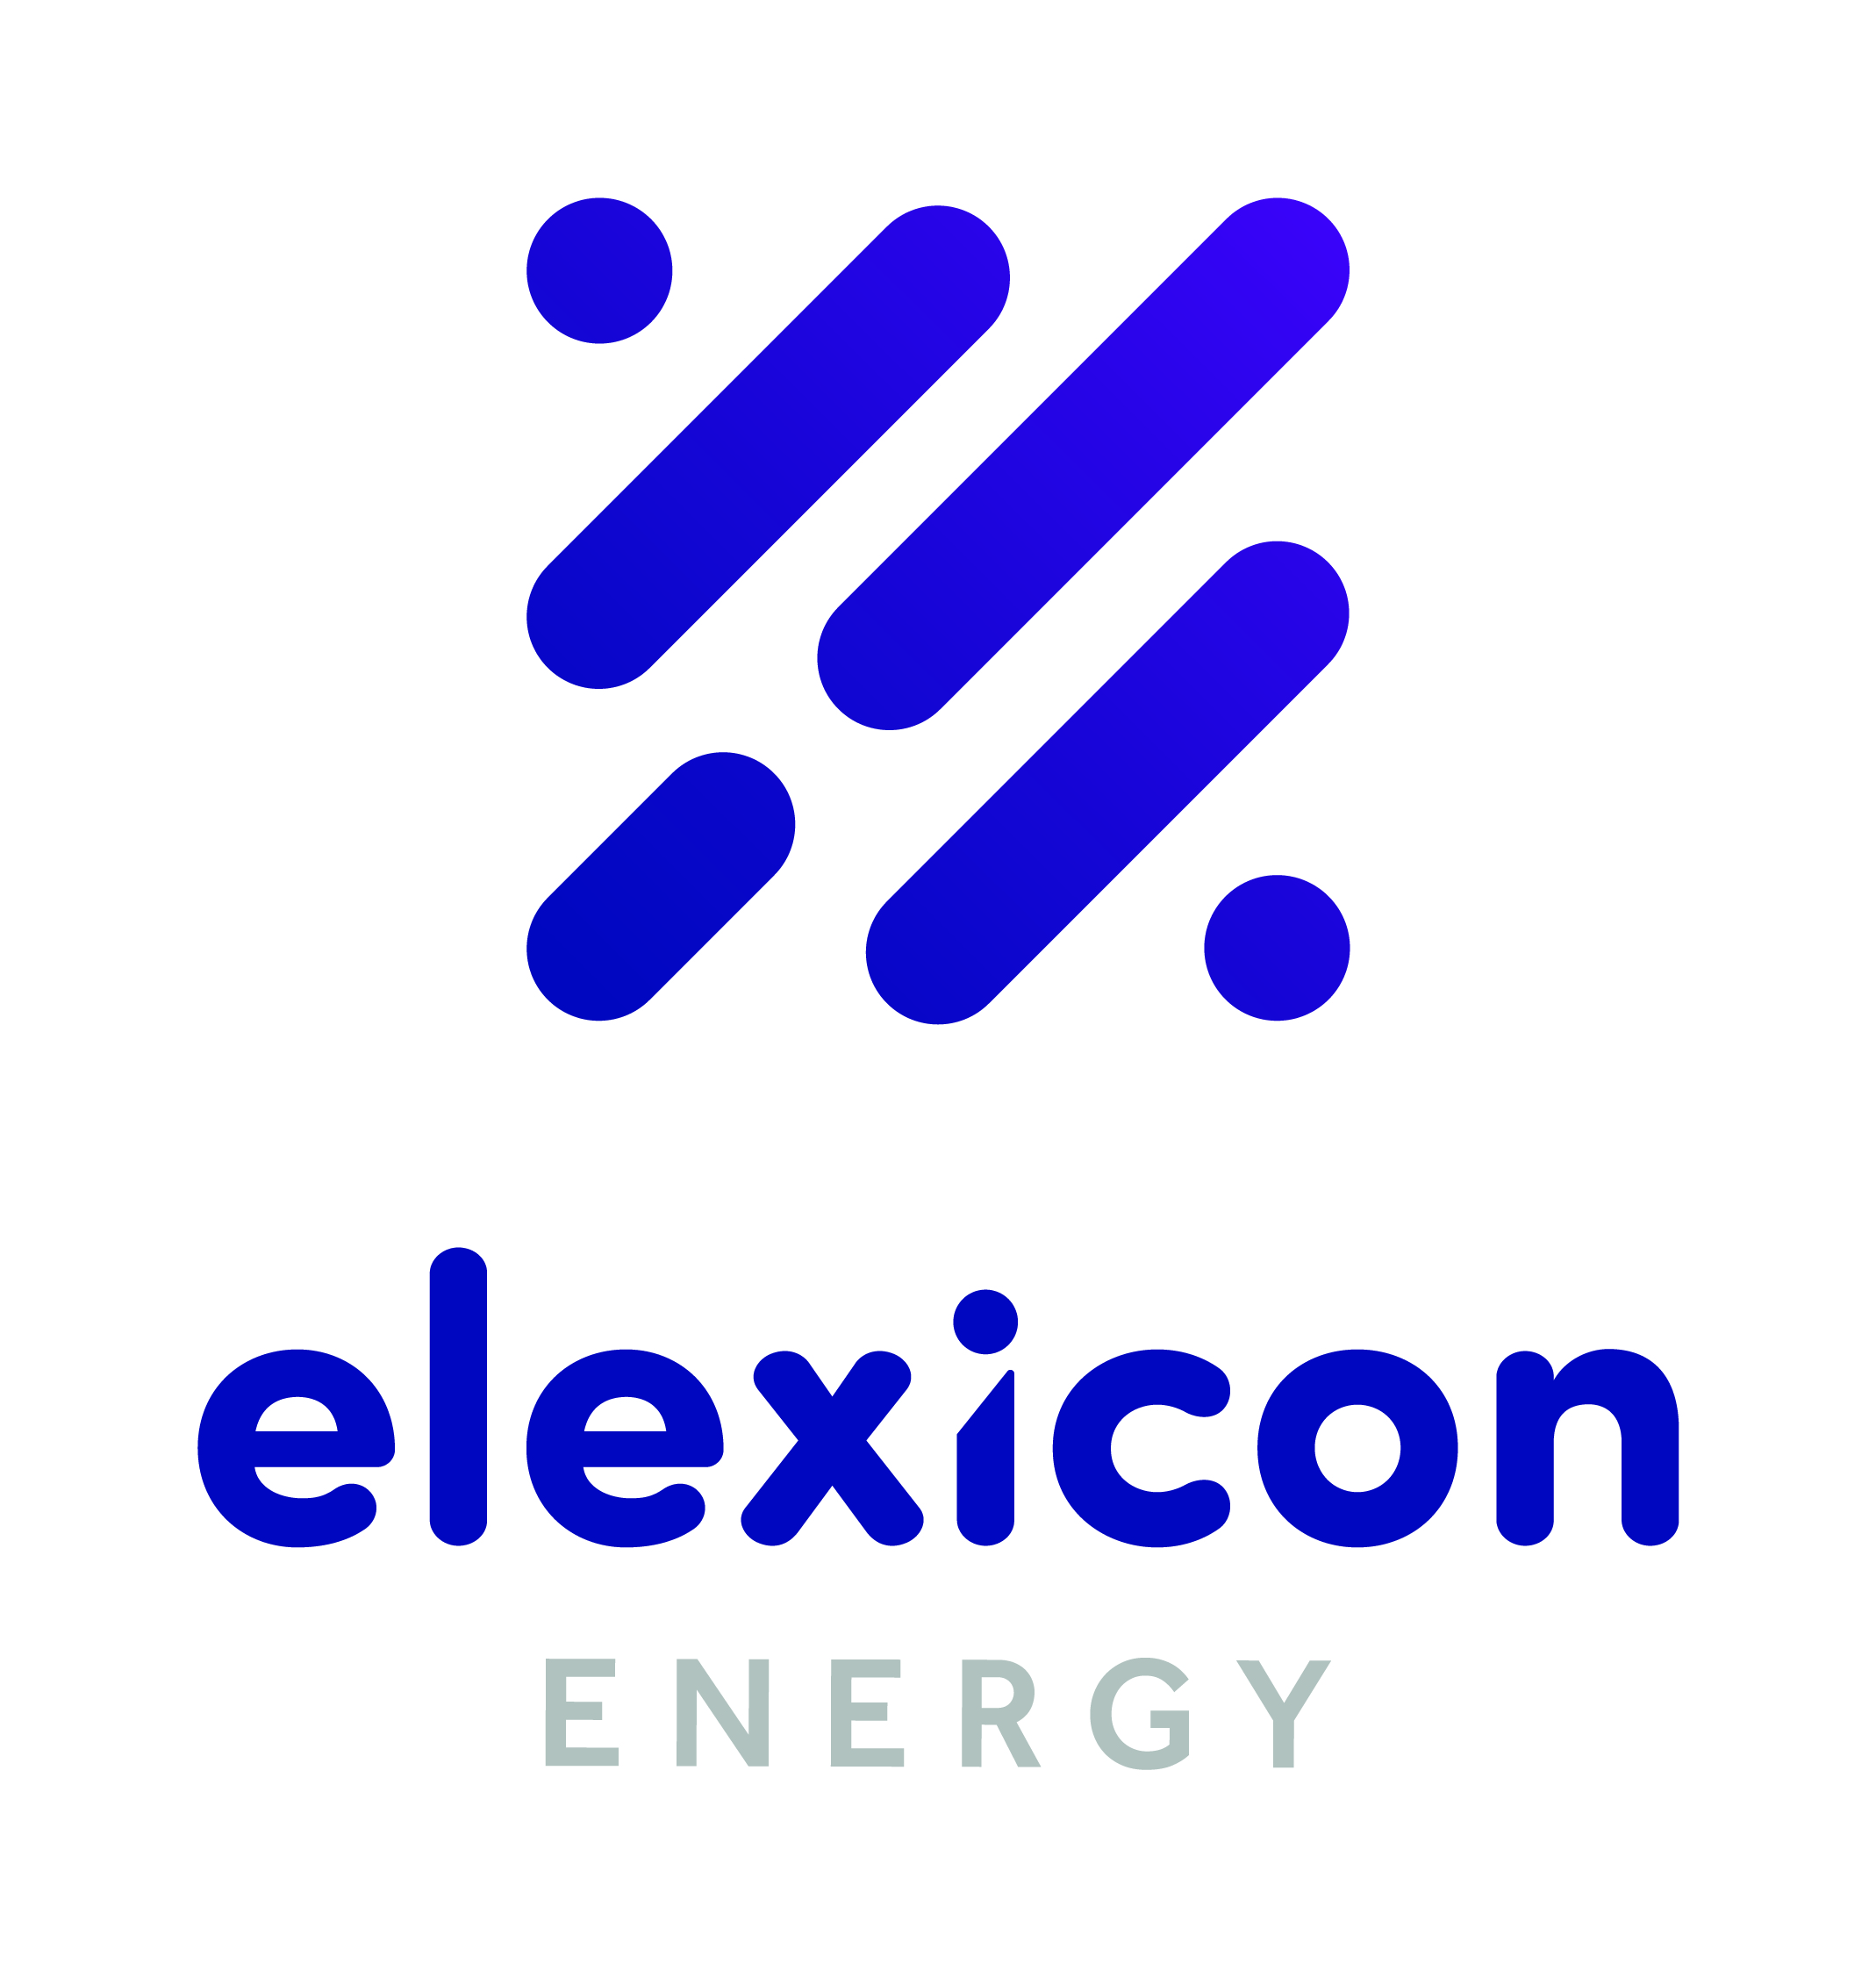 Elexicon Energy